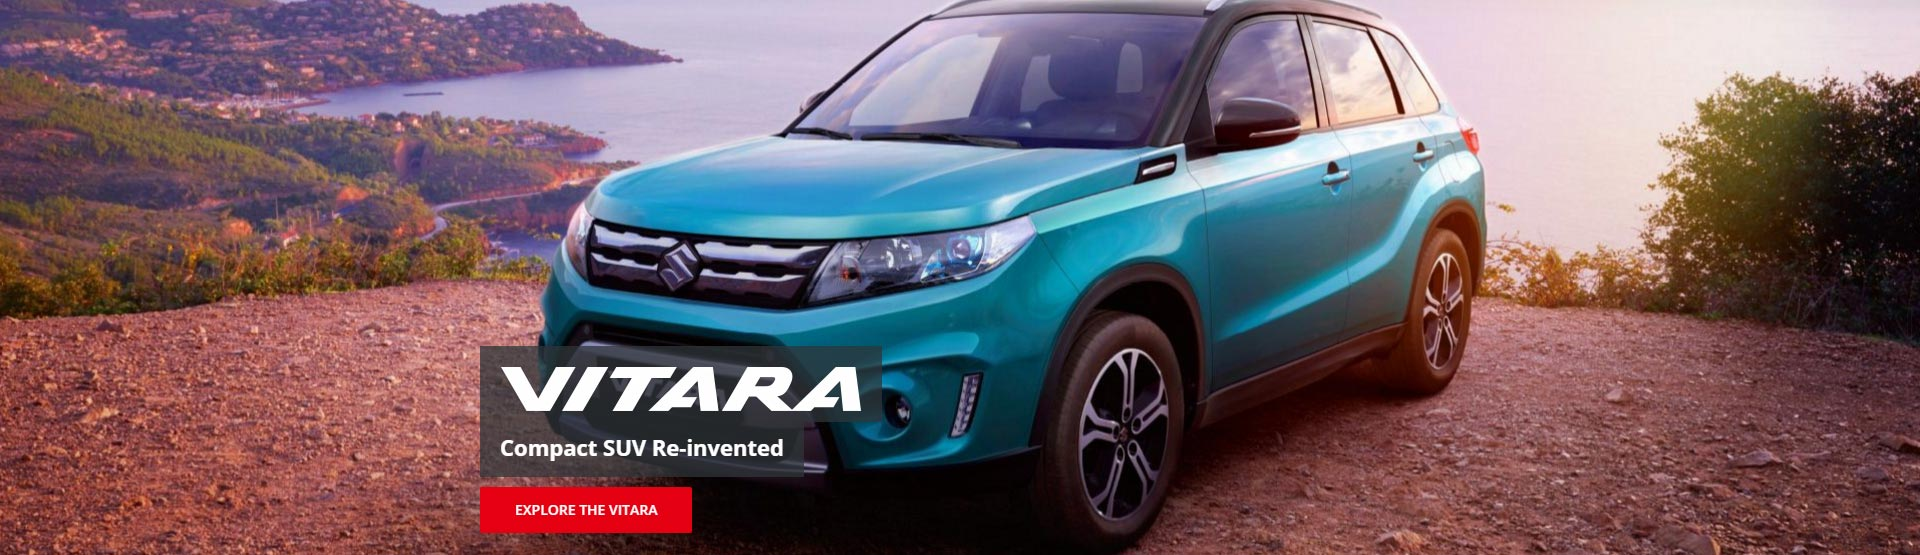 The Suzuki Vitara, the compact SUV reinvented, explore it at Redcliffe Suzuki Brisbane.